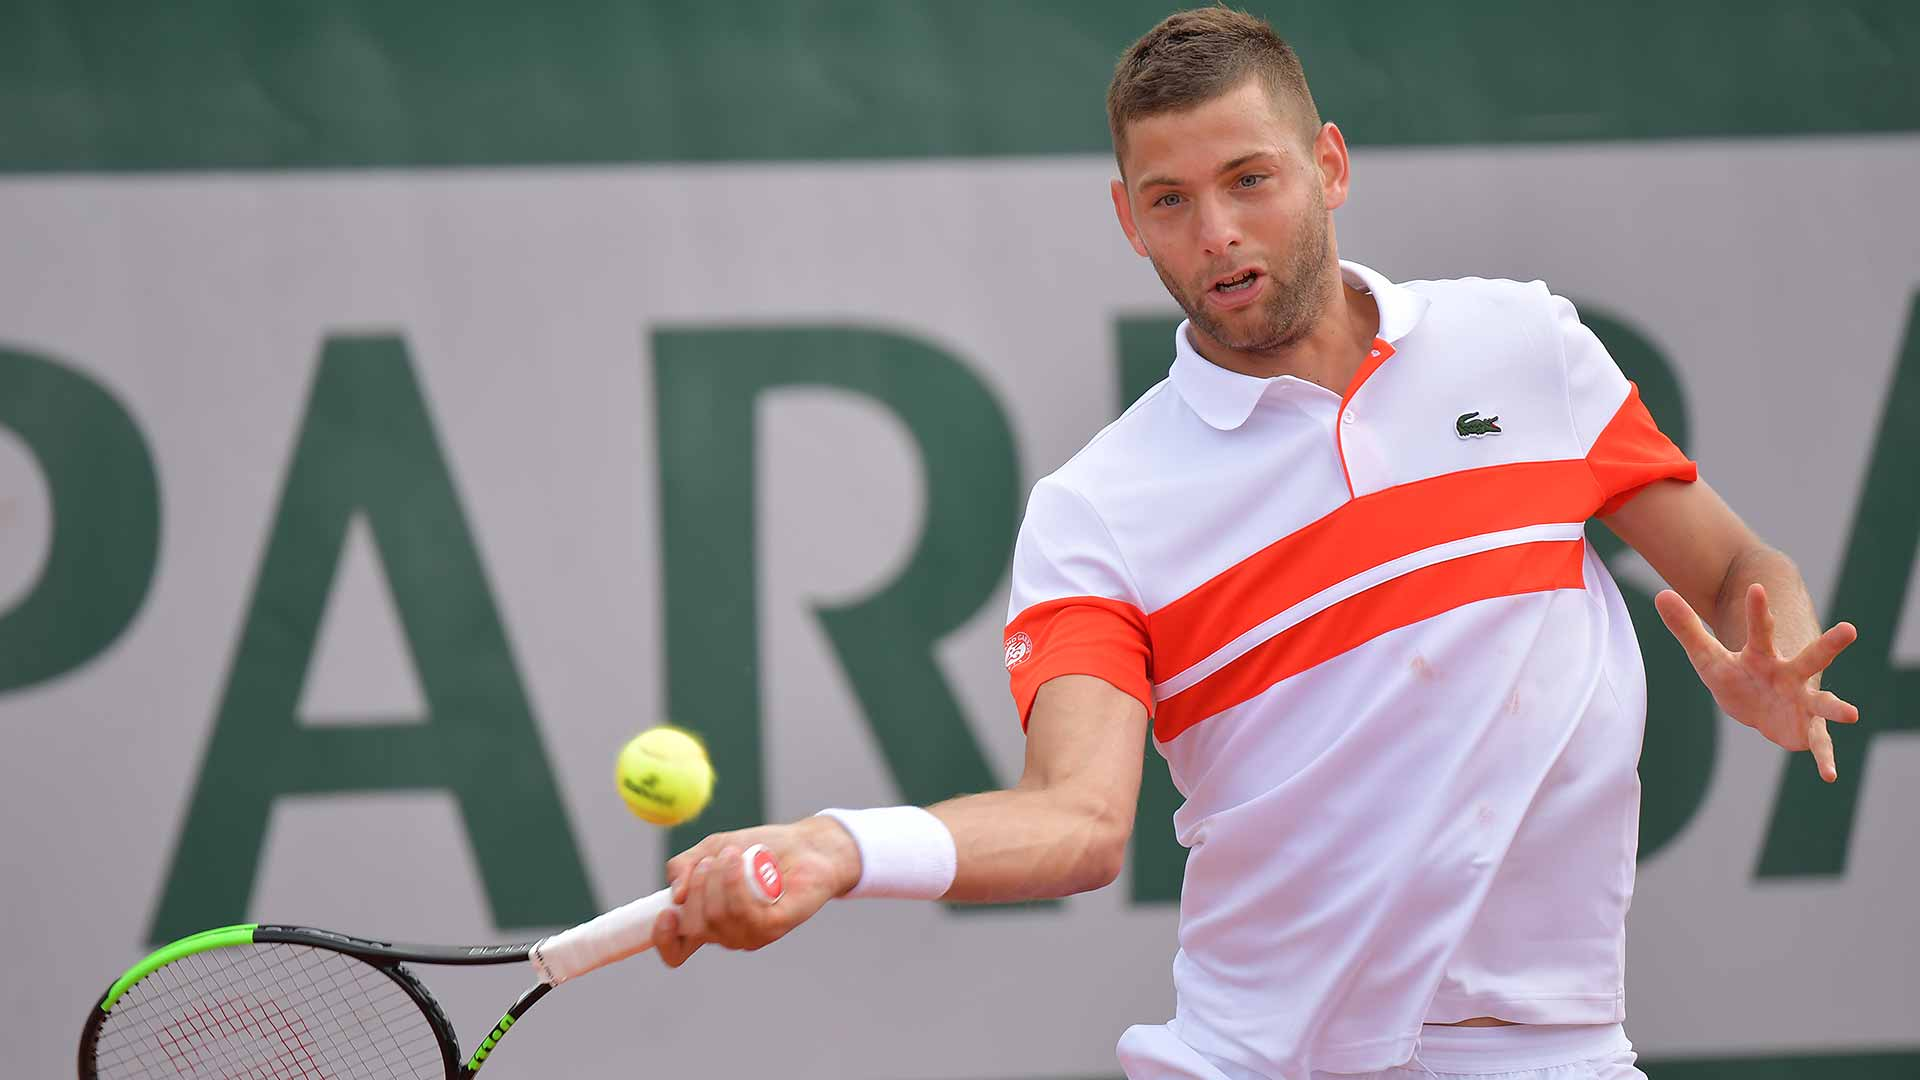 Filip Krajinovic faces Stefanos Tsitsipas at Roland Garros